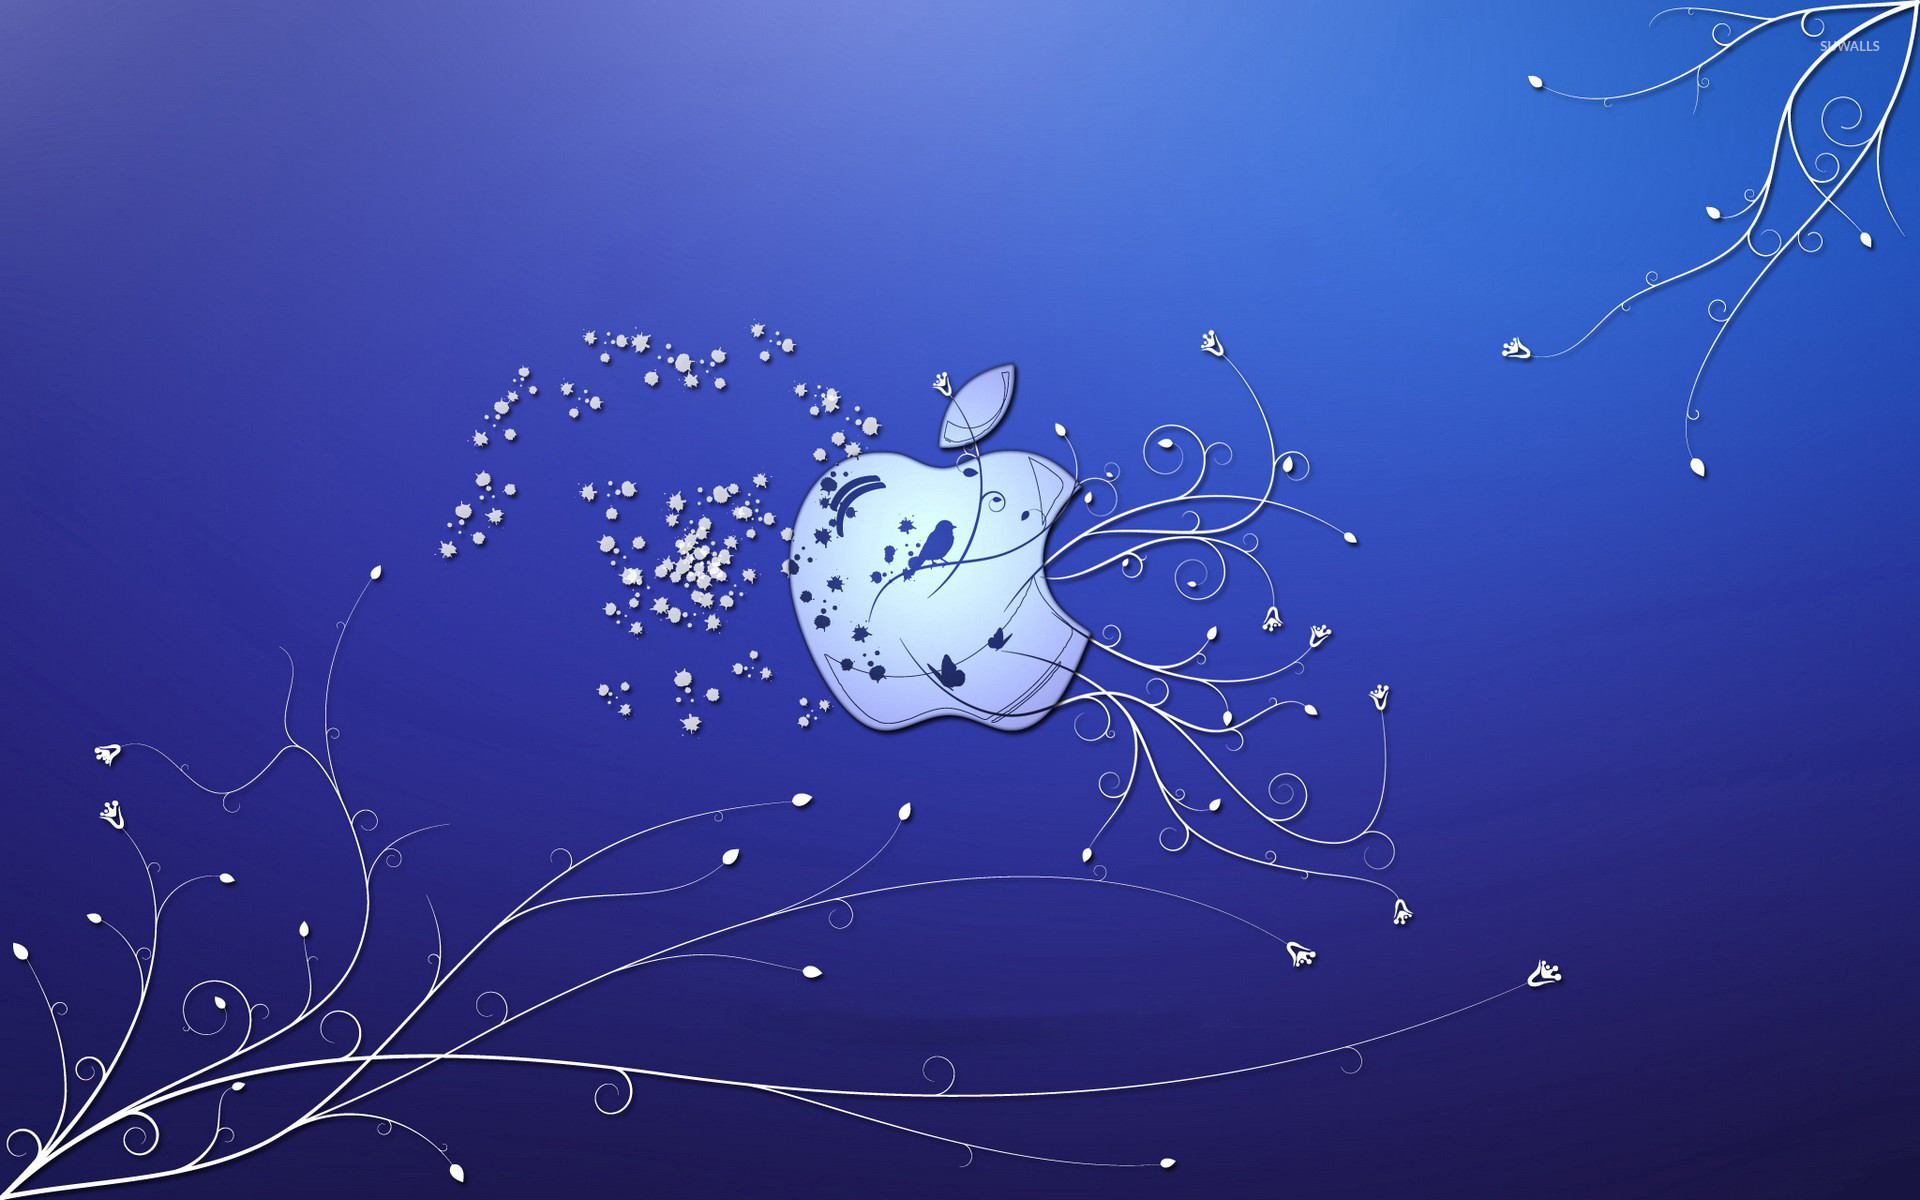 1920x1200 Bird and butterflies in the Apple wallpaper  jpg